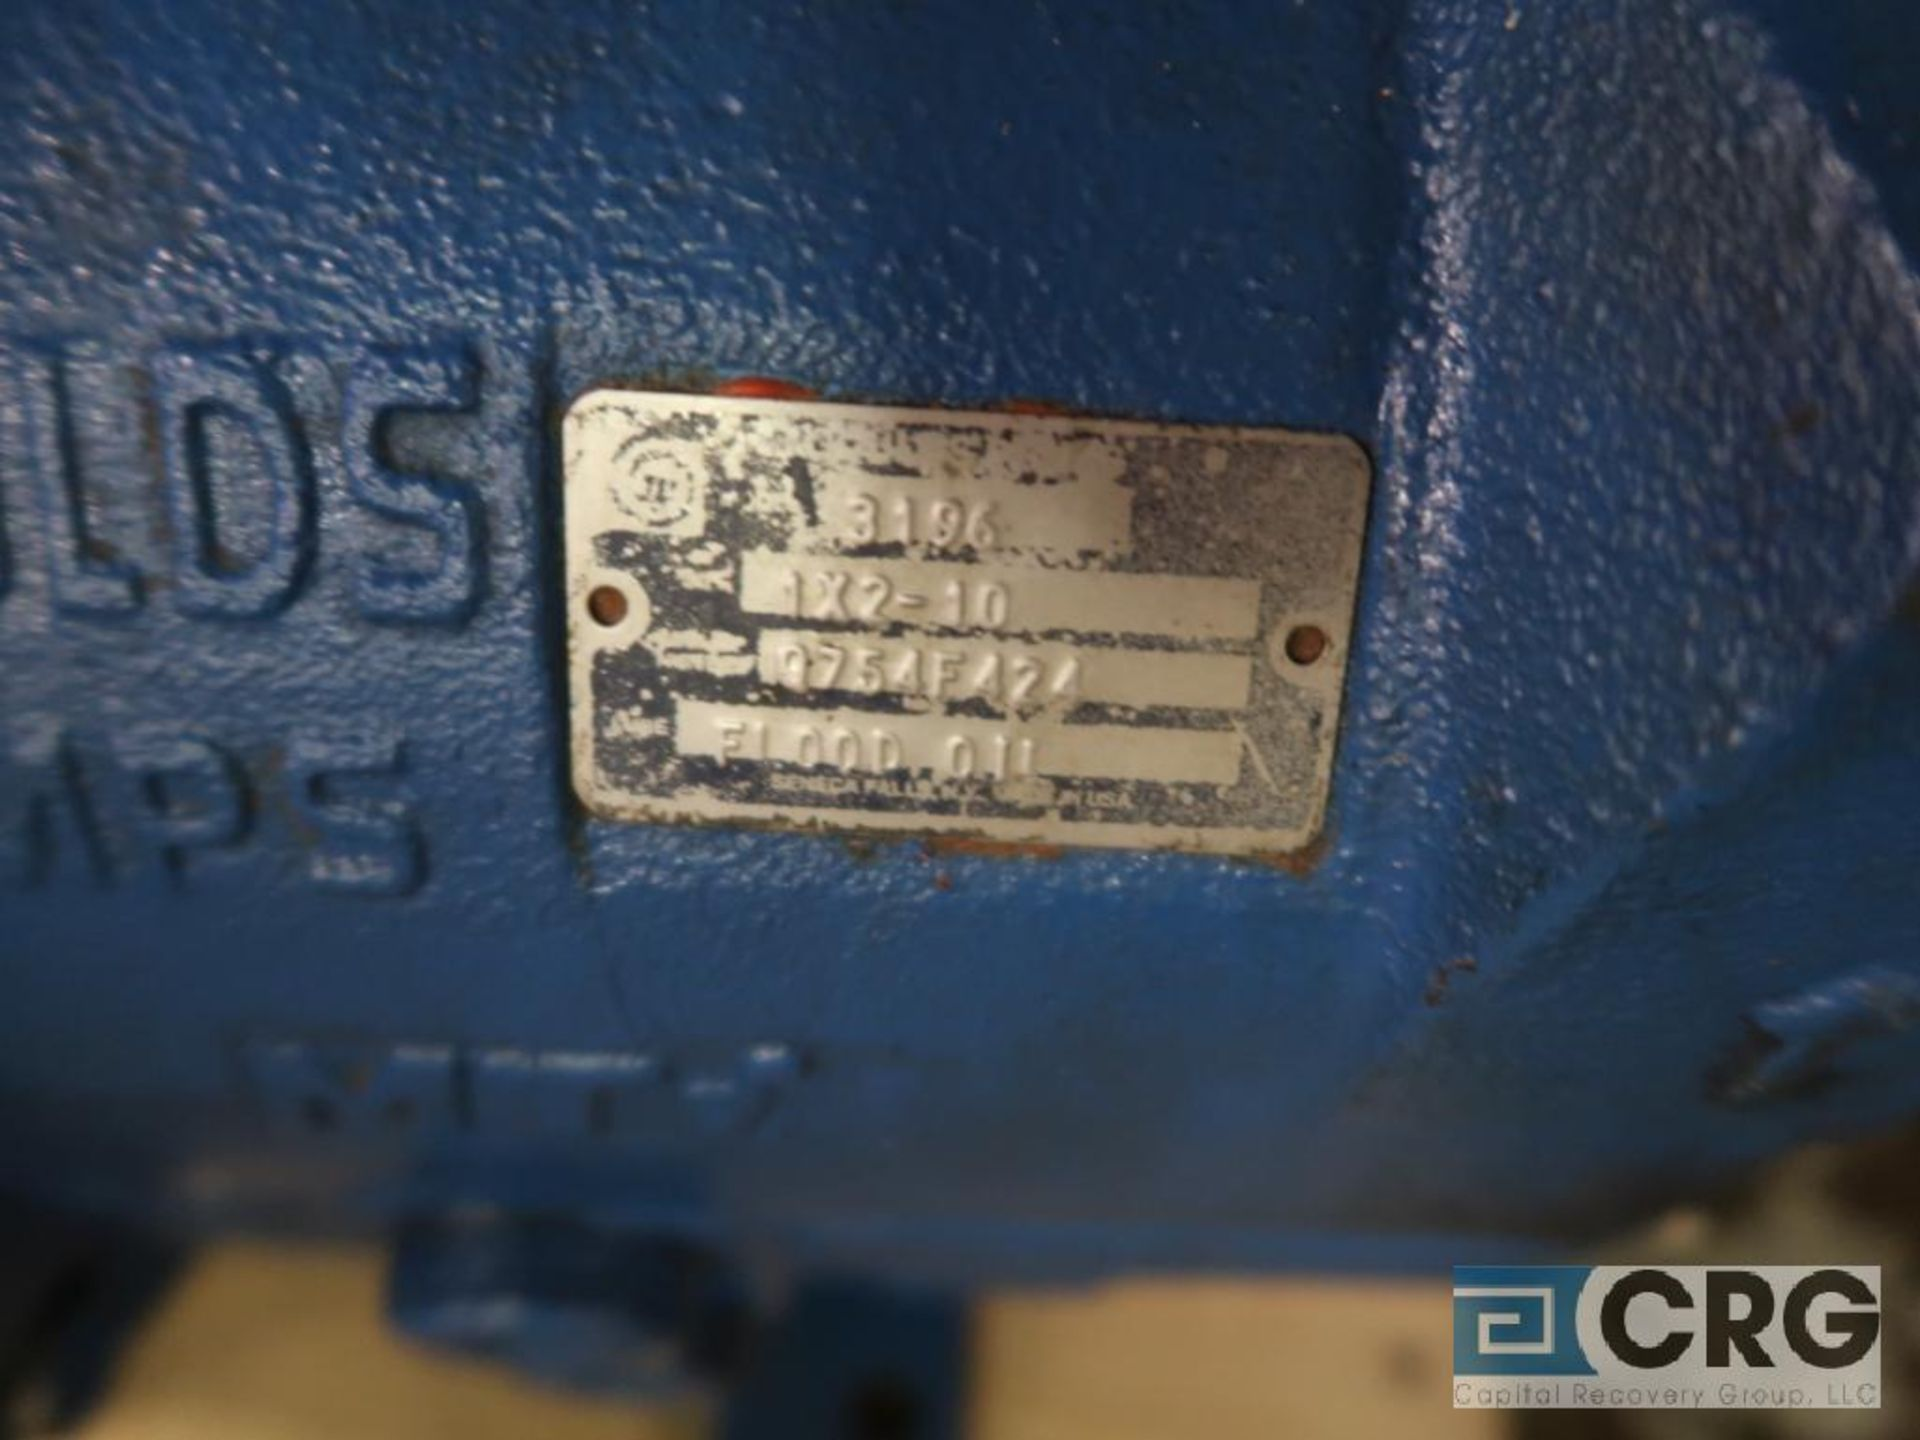 Lot of (3) Goulds 3196 10 in. pumps, (2) MT, and (1) MTX (Basement Stores) - Image 2 of 4